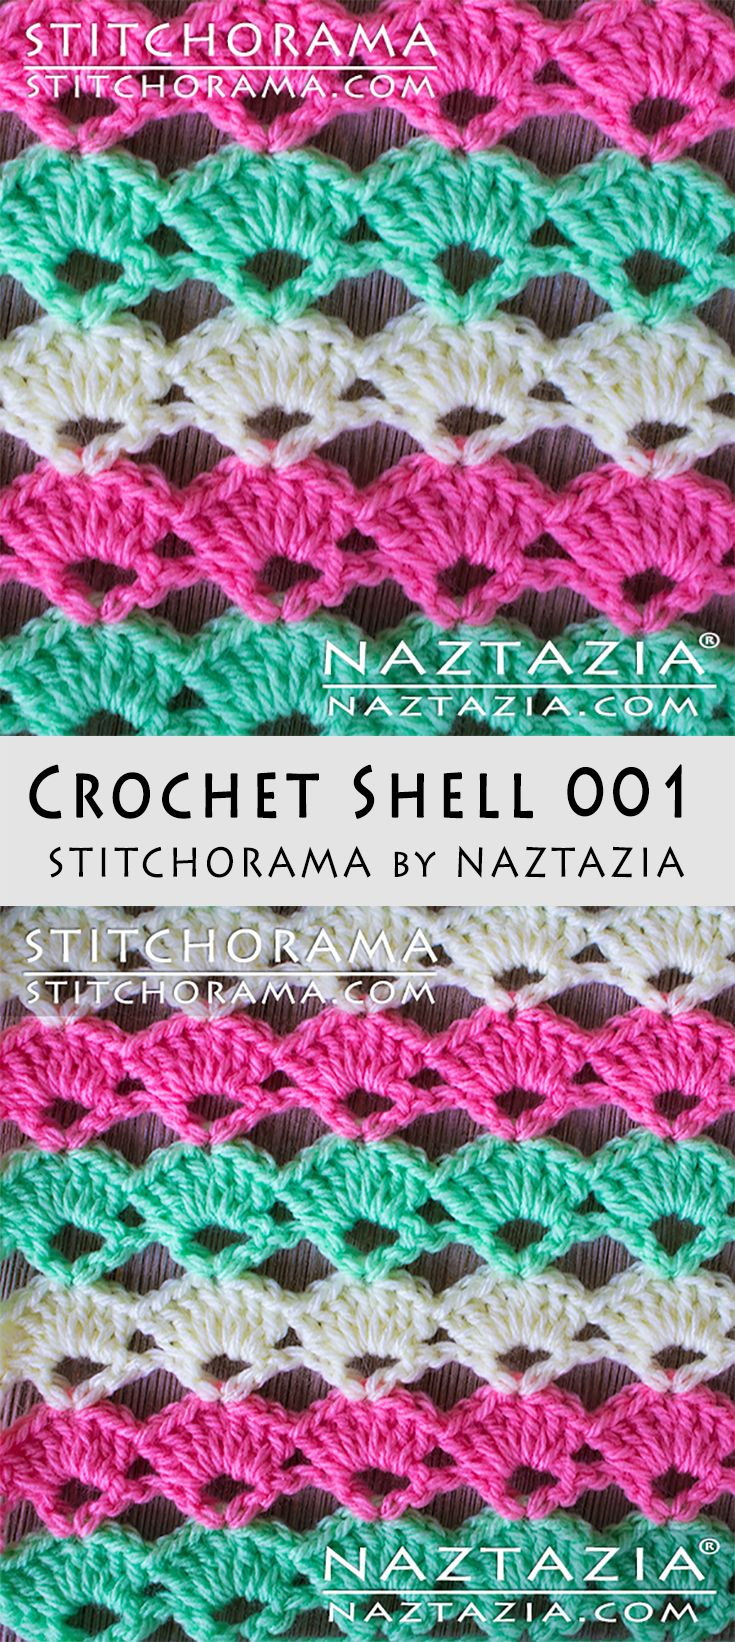 Crochet Shell 001 - Stitchorama by Naztazia | CROCHET STITCHES ...